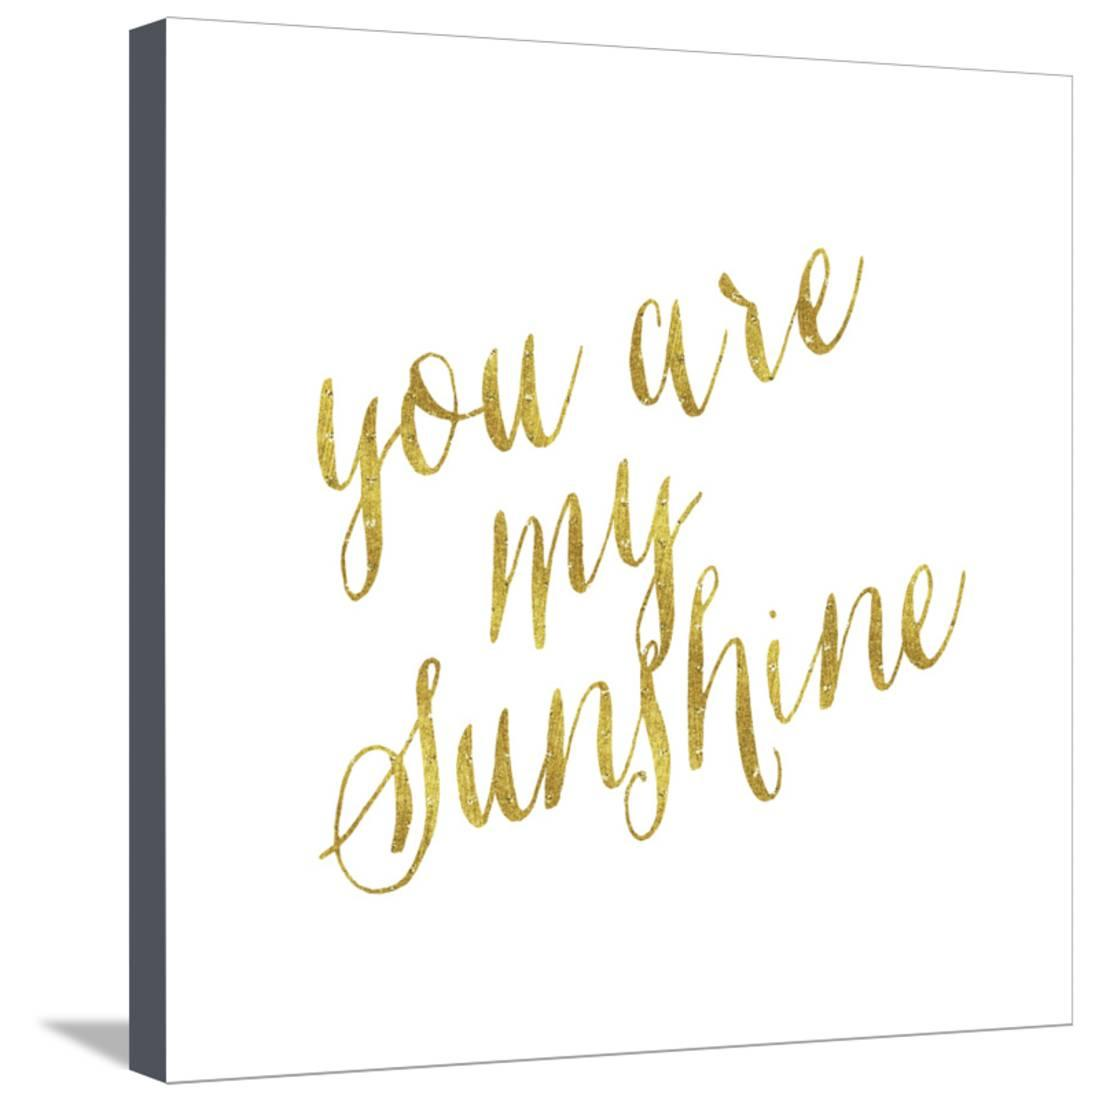 You are My Sunshine Gold Faux Foil Metallic Glitter Quote Isolat Stretched Canvas Print Wall Art By silverspiralarts